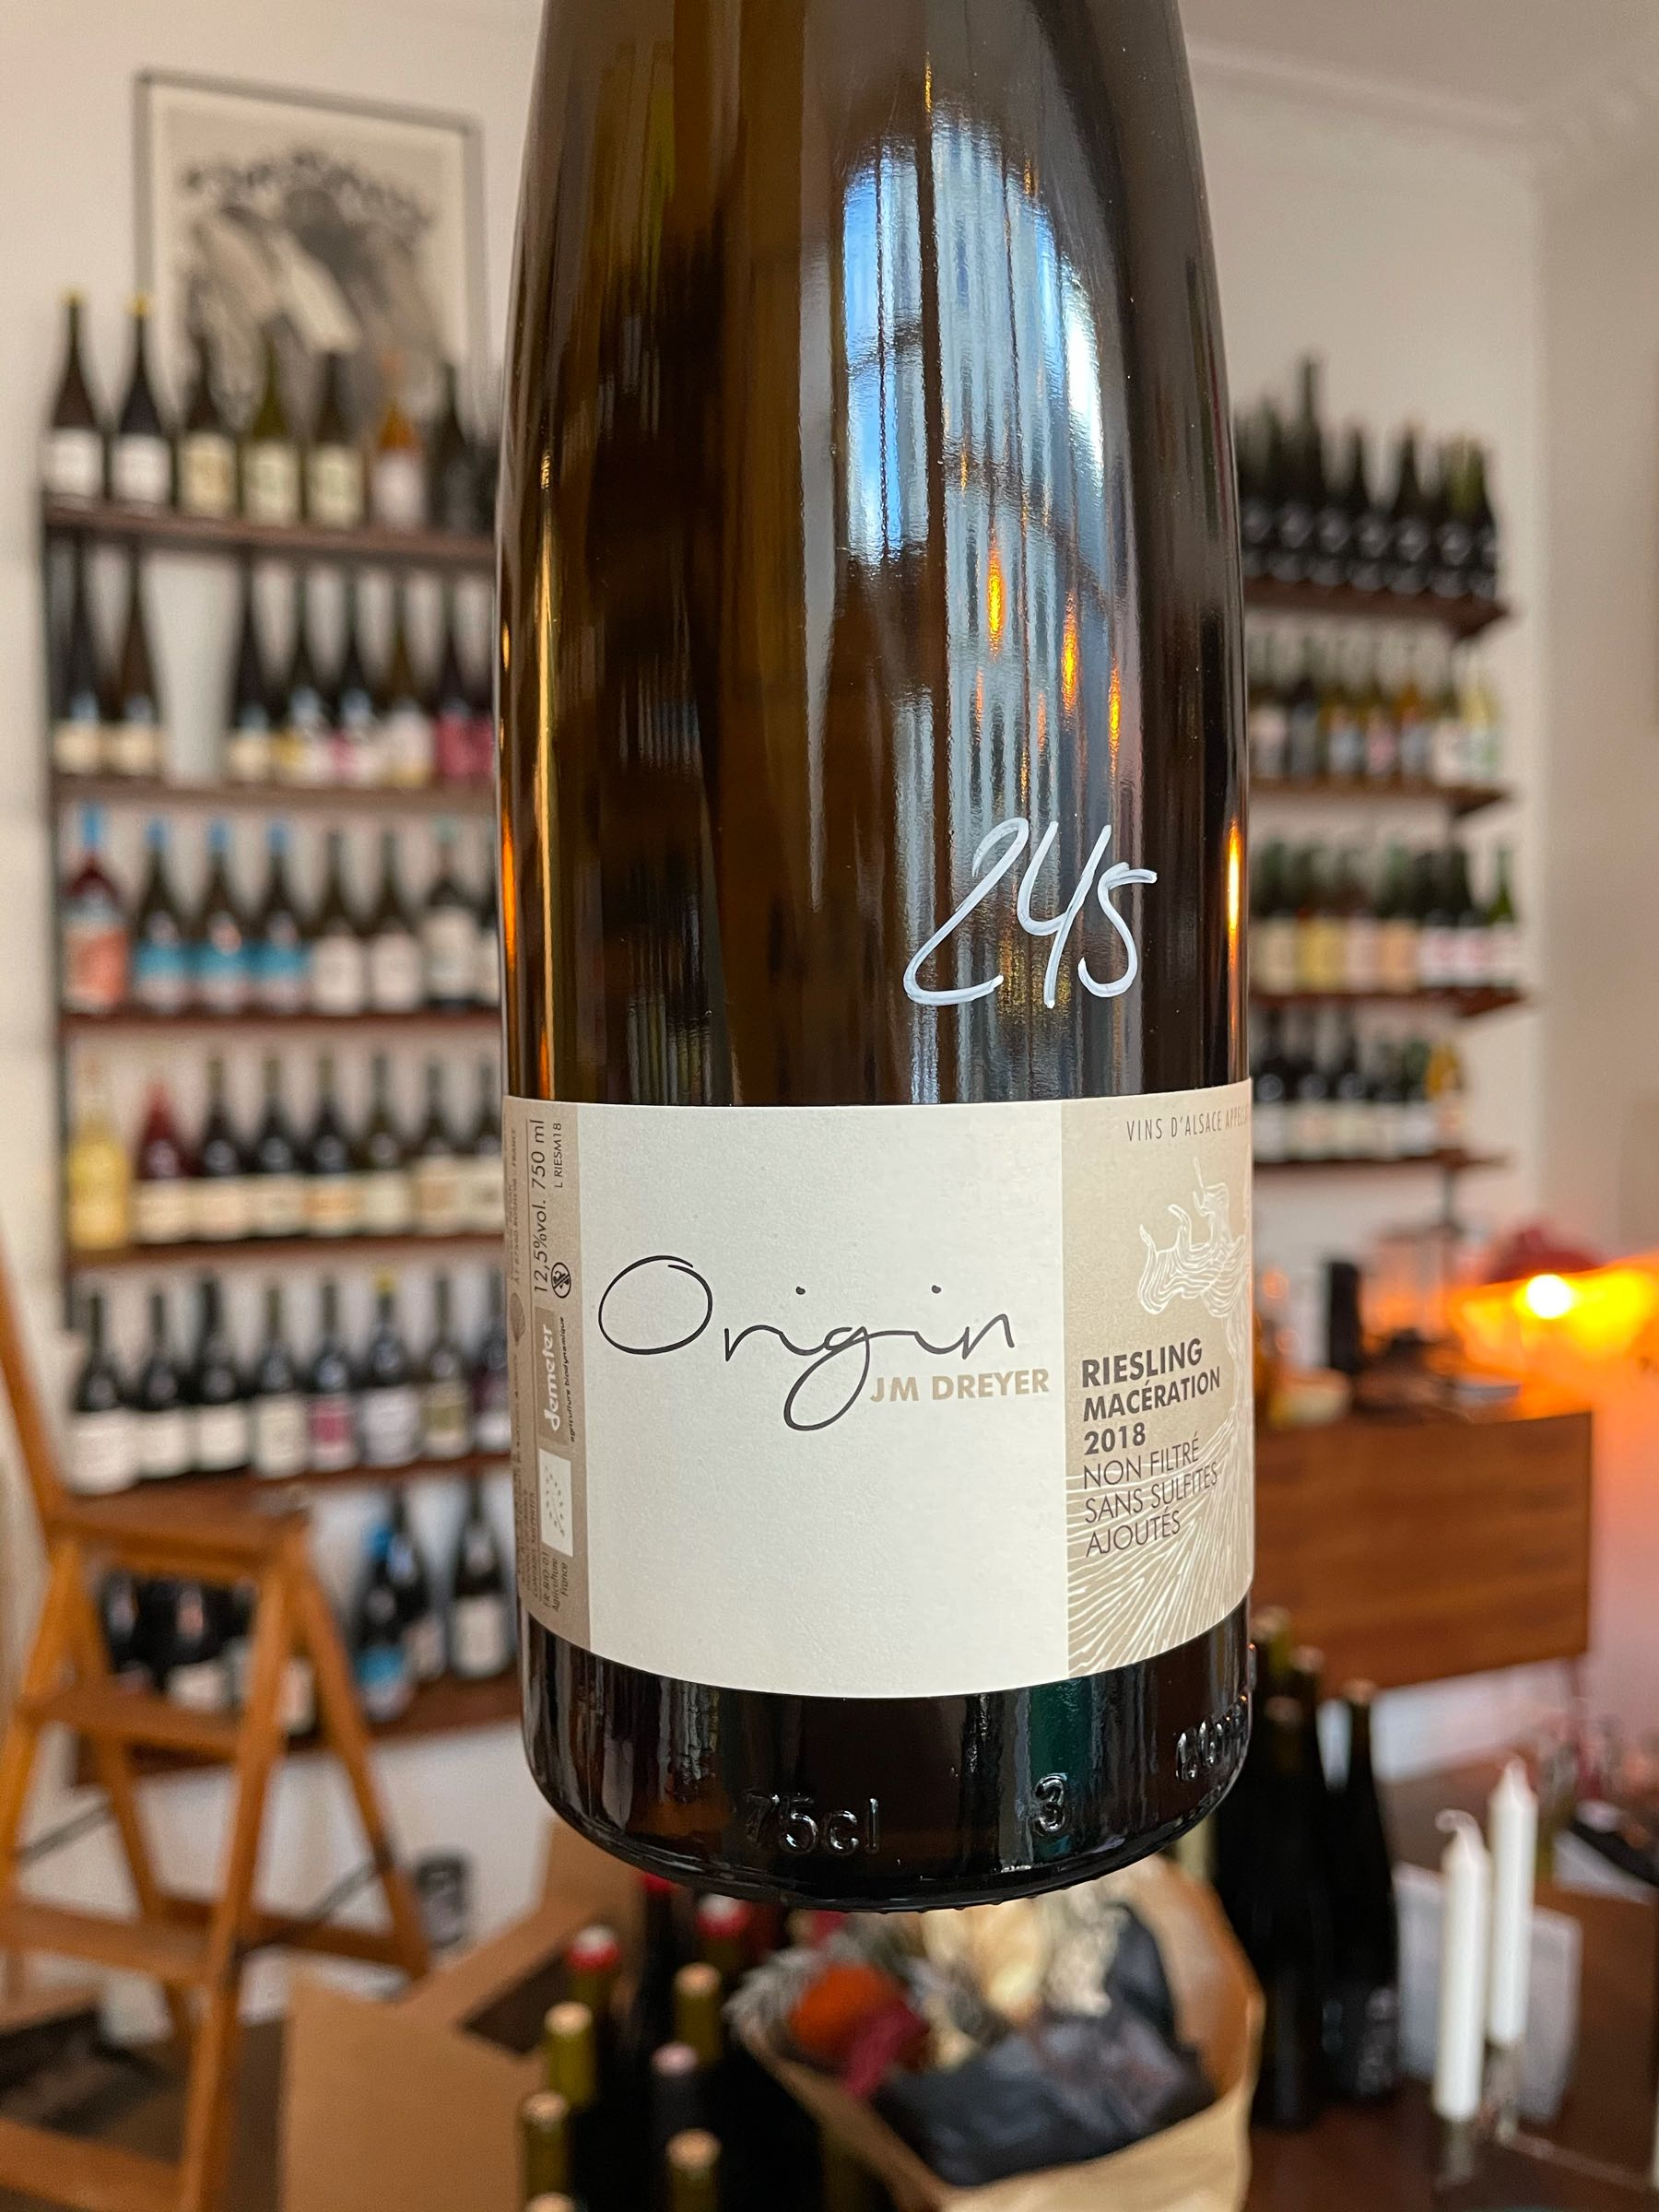 Origin Riesling 2018 - Jean Marc Dreyer